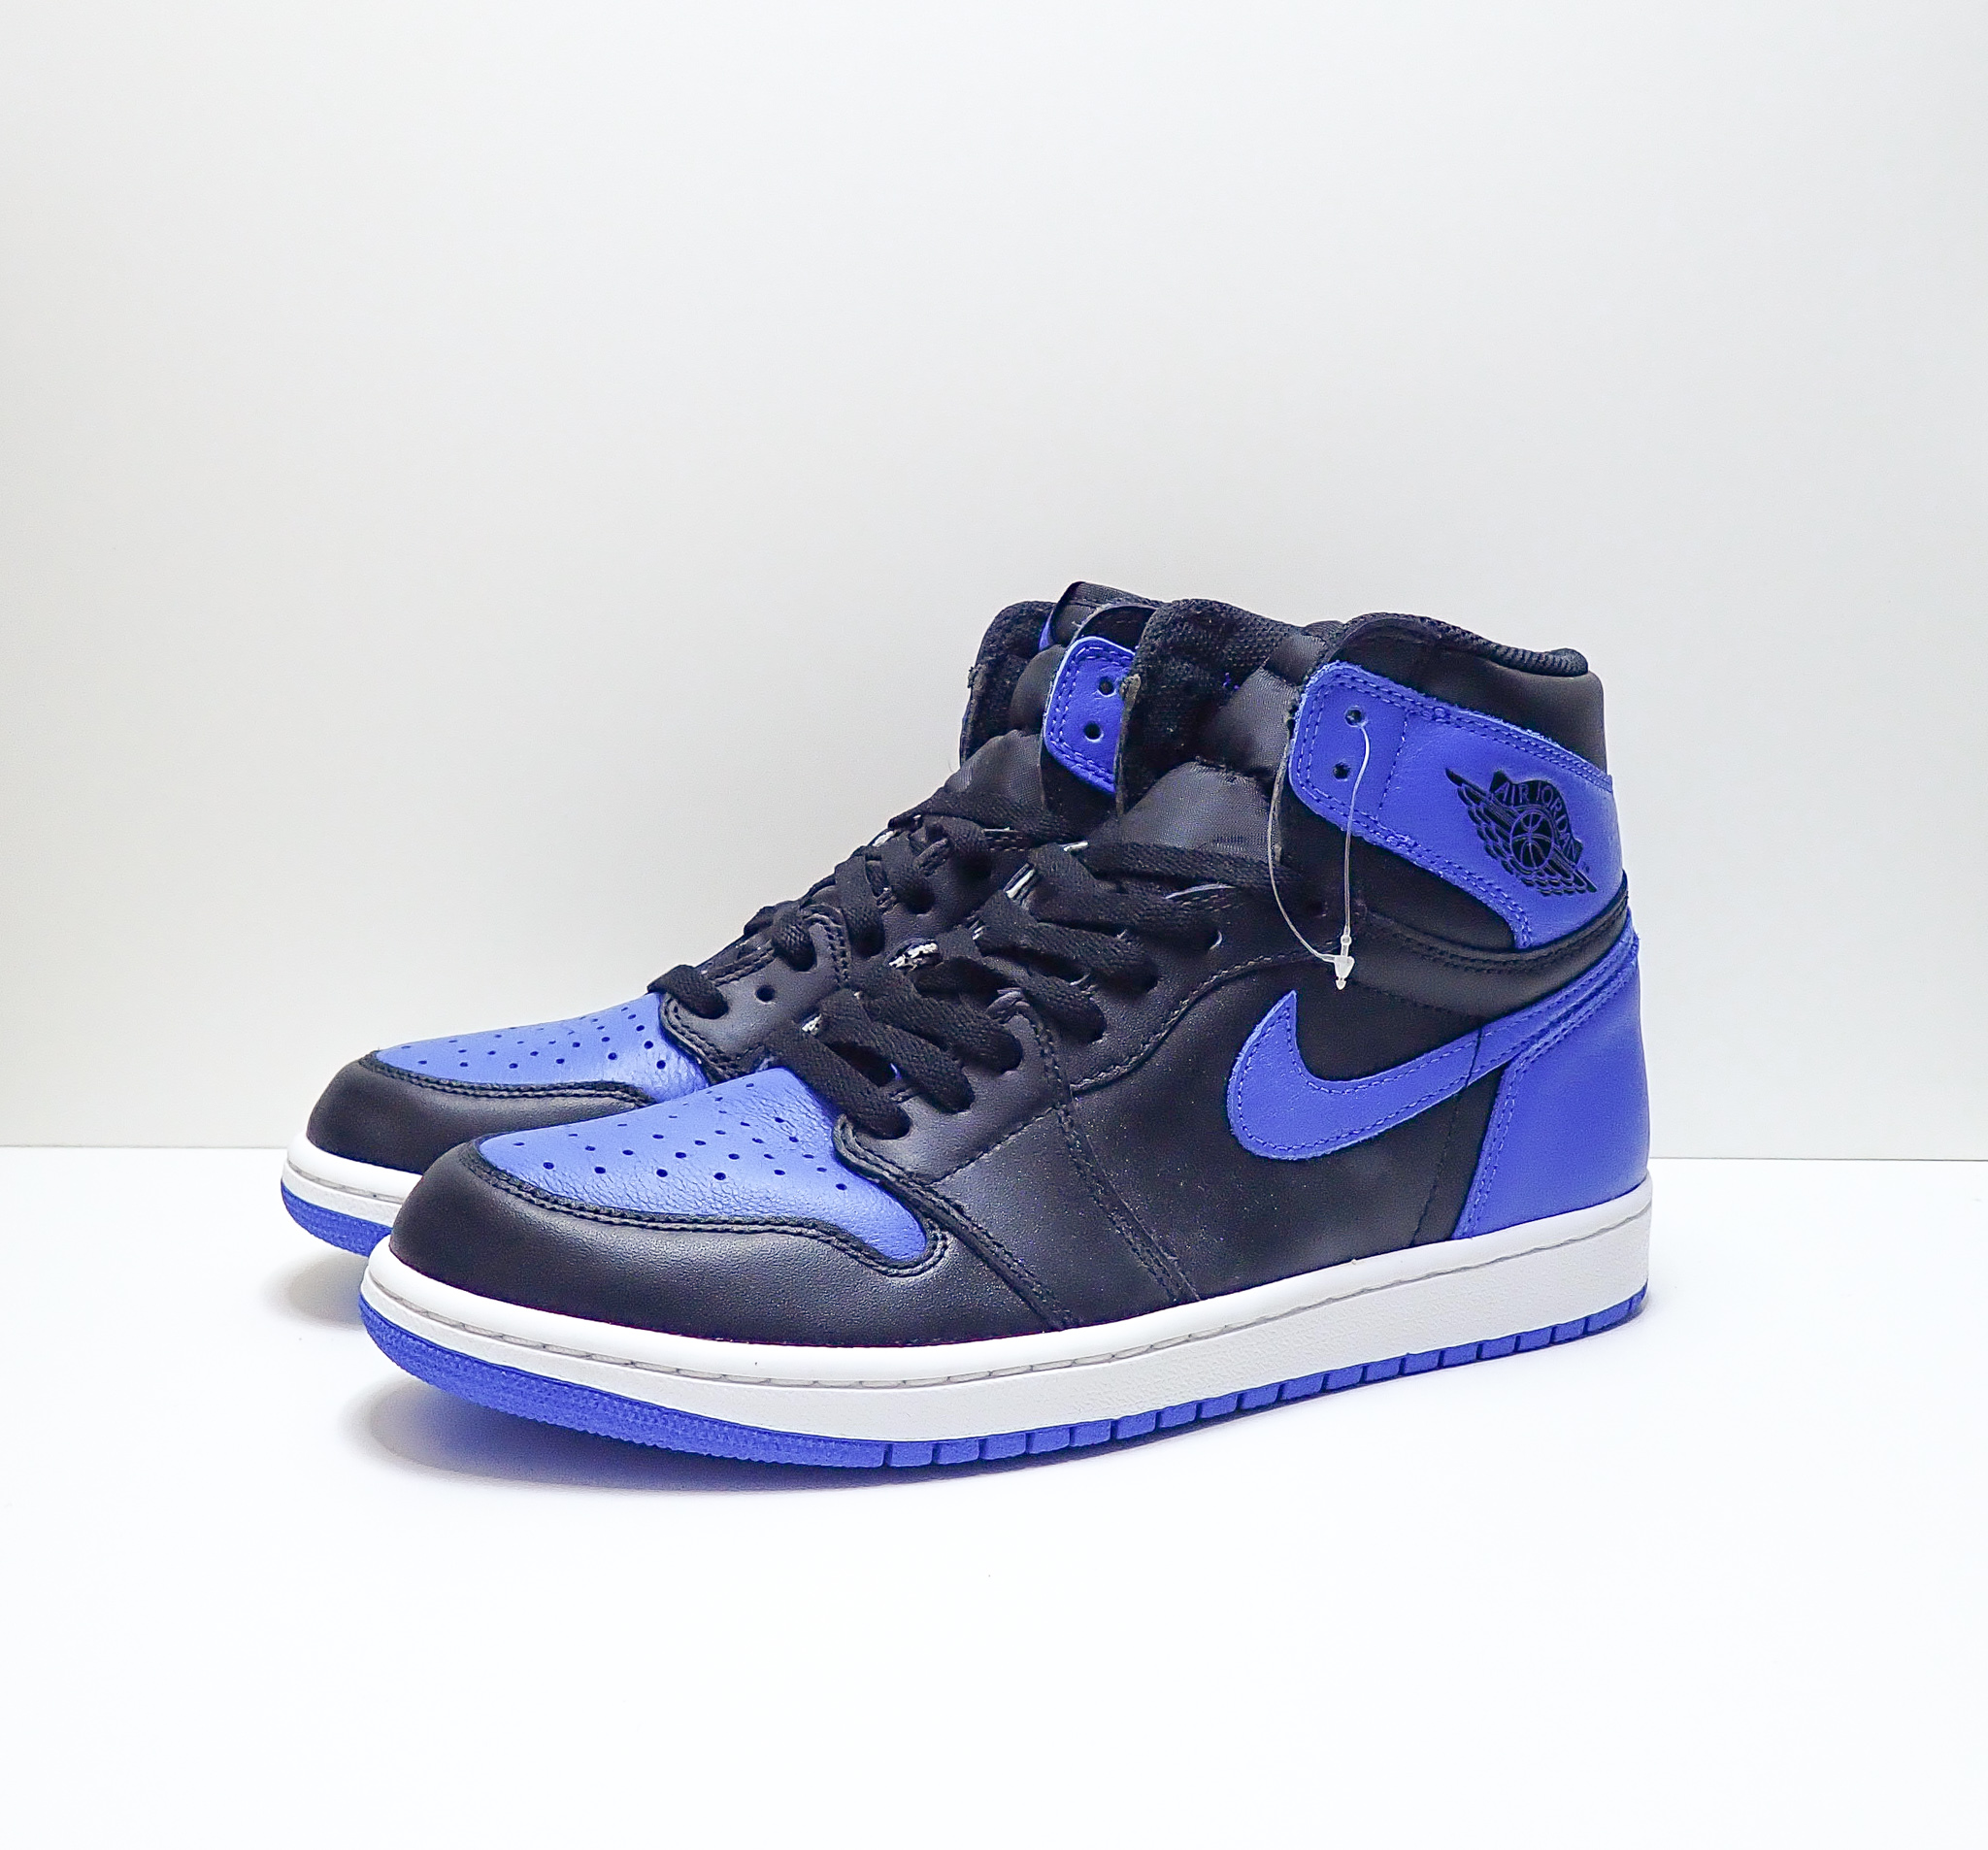 Jordan 1 Retro High Royal